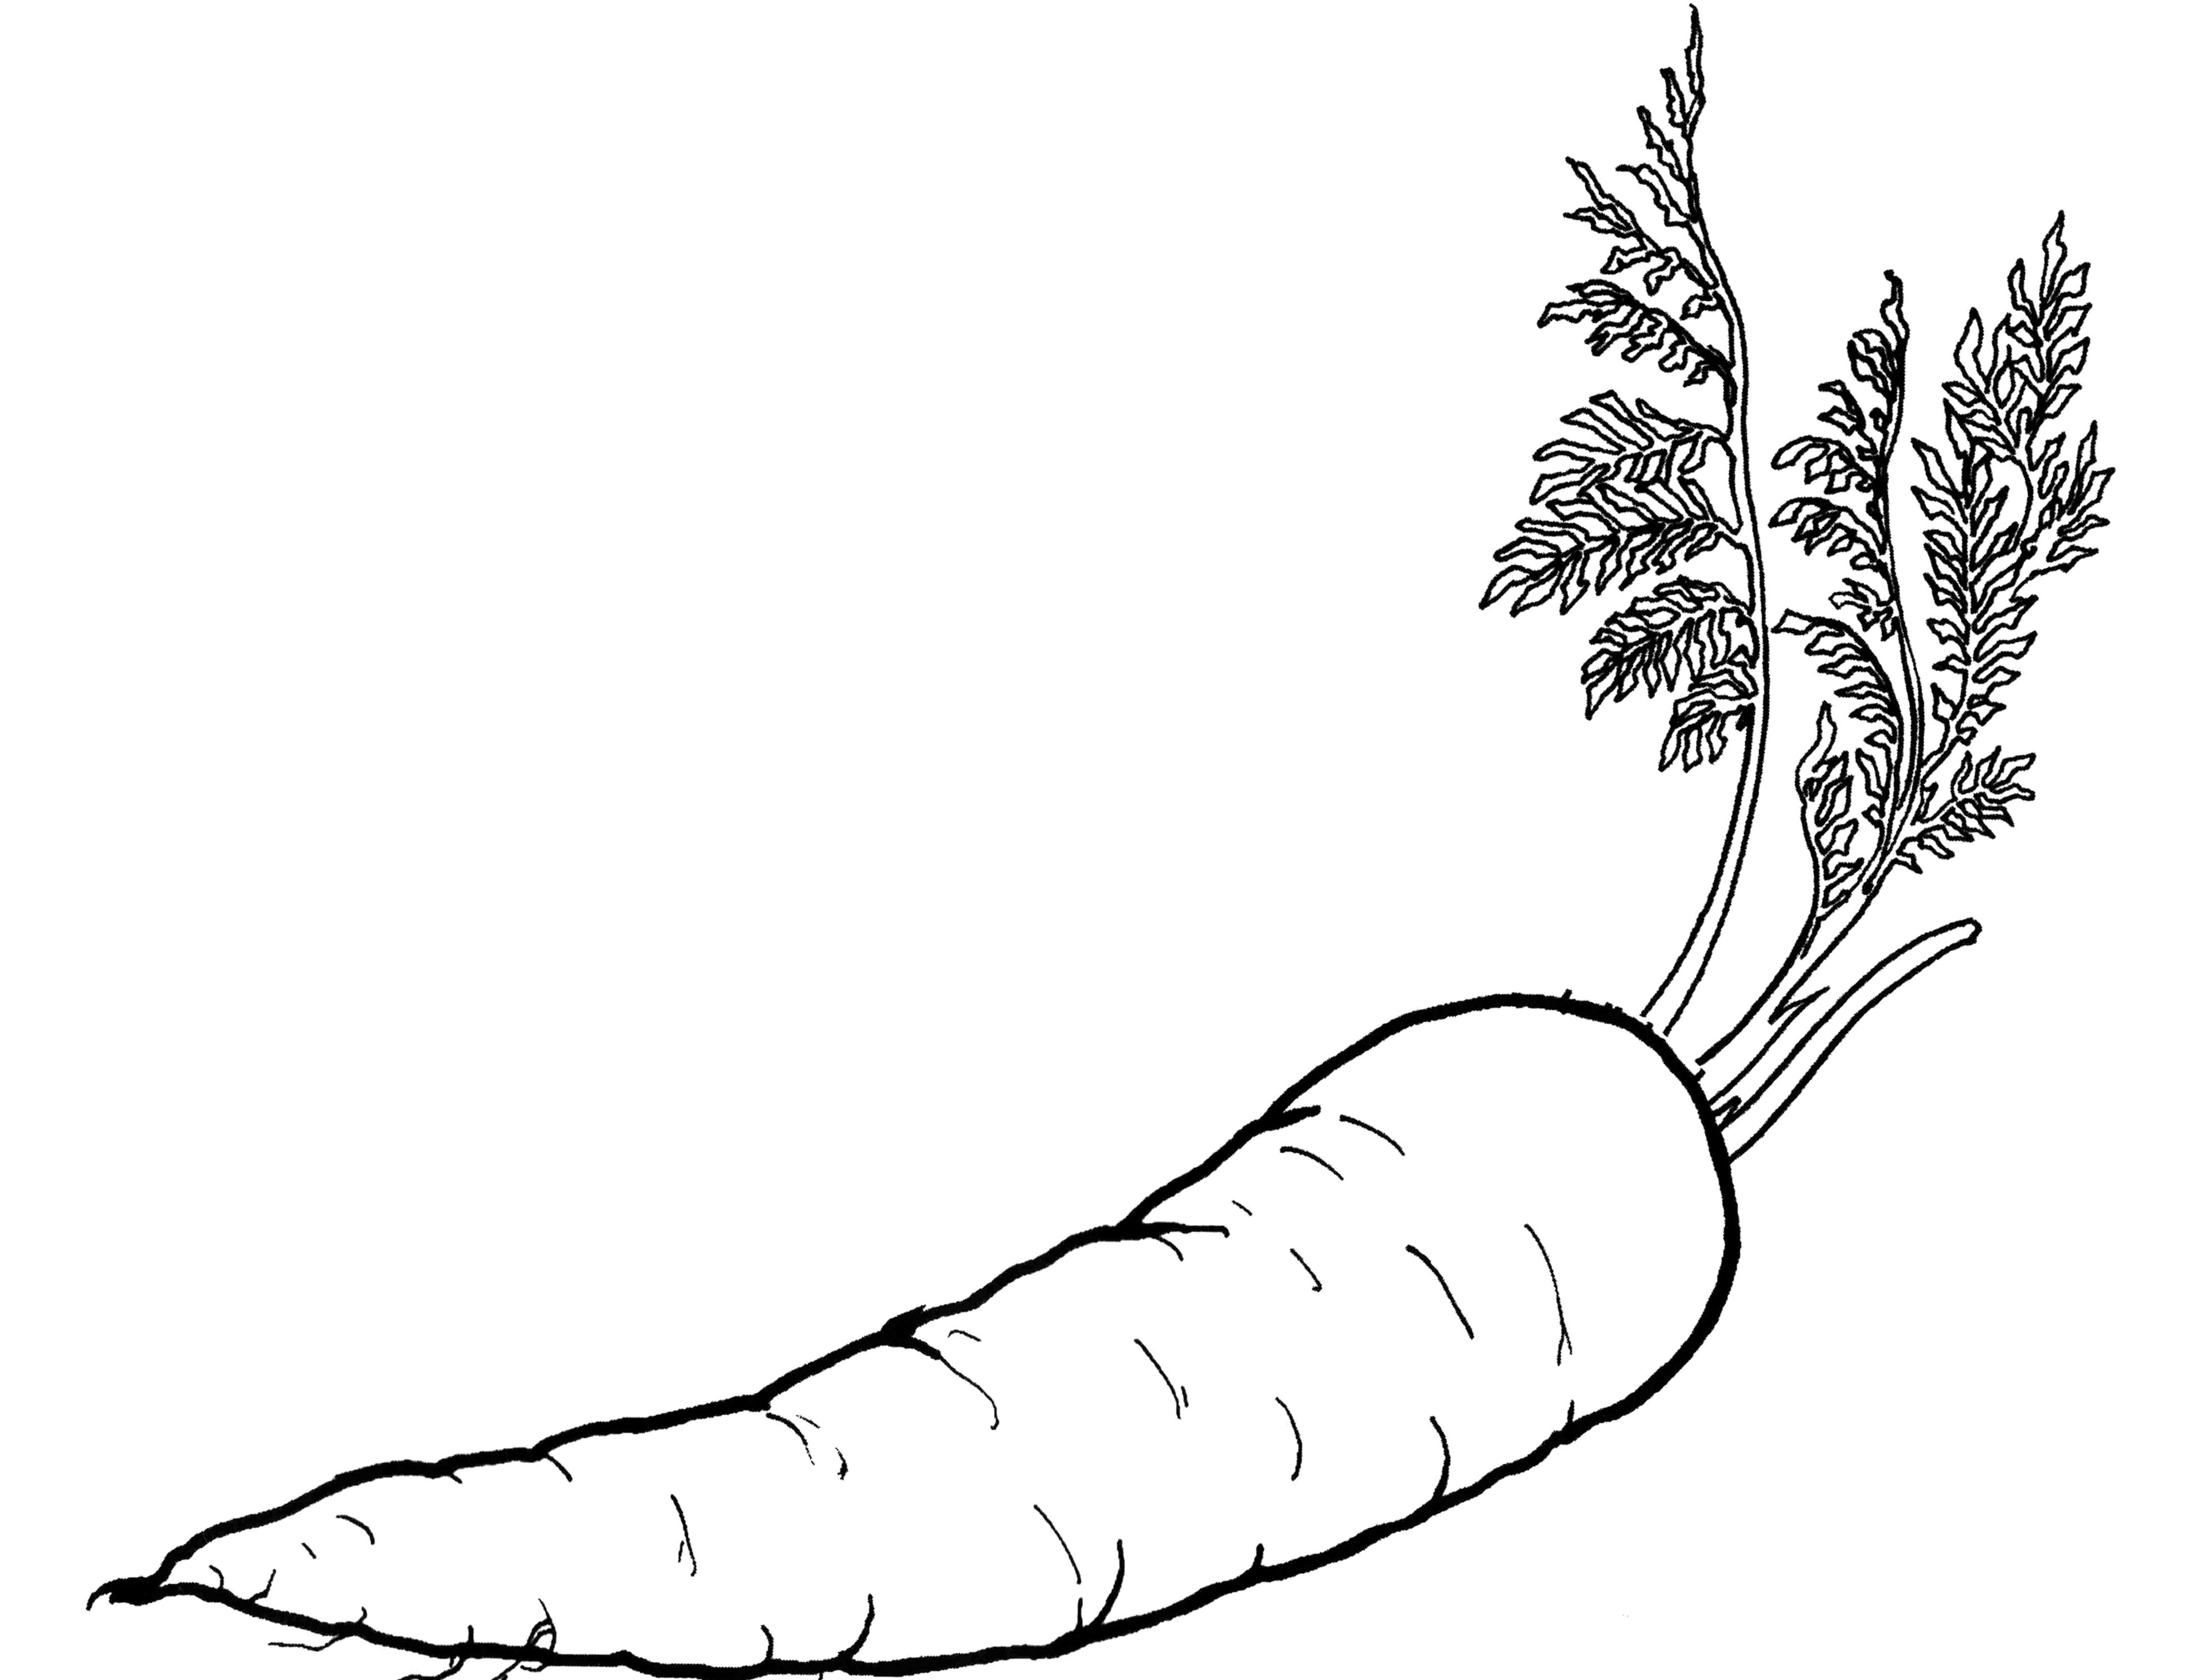 Carrots Coloring Page of Vegetables, carrots and vegetables.